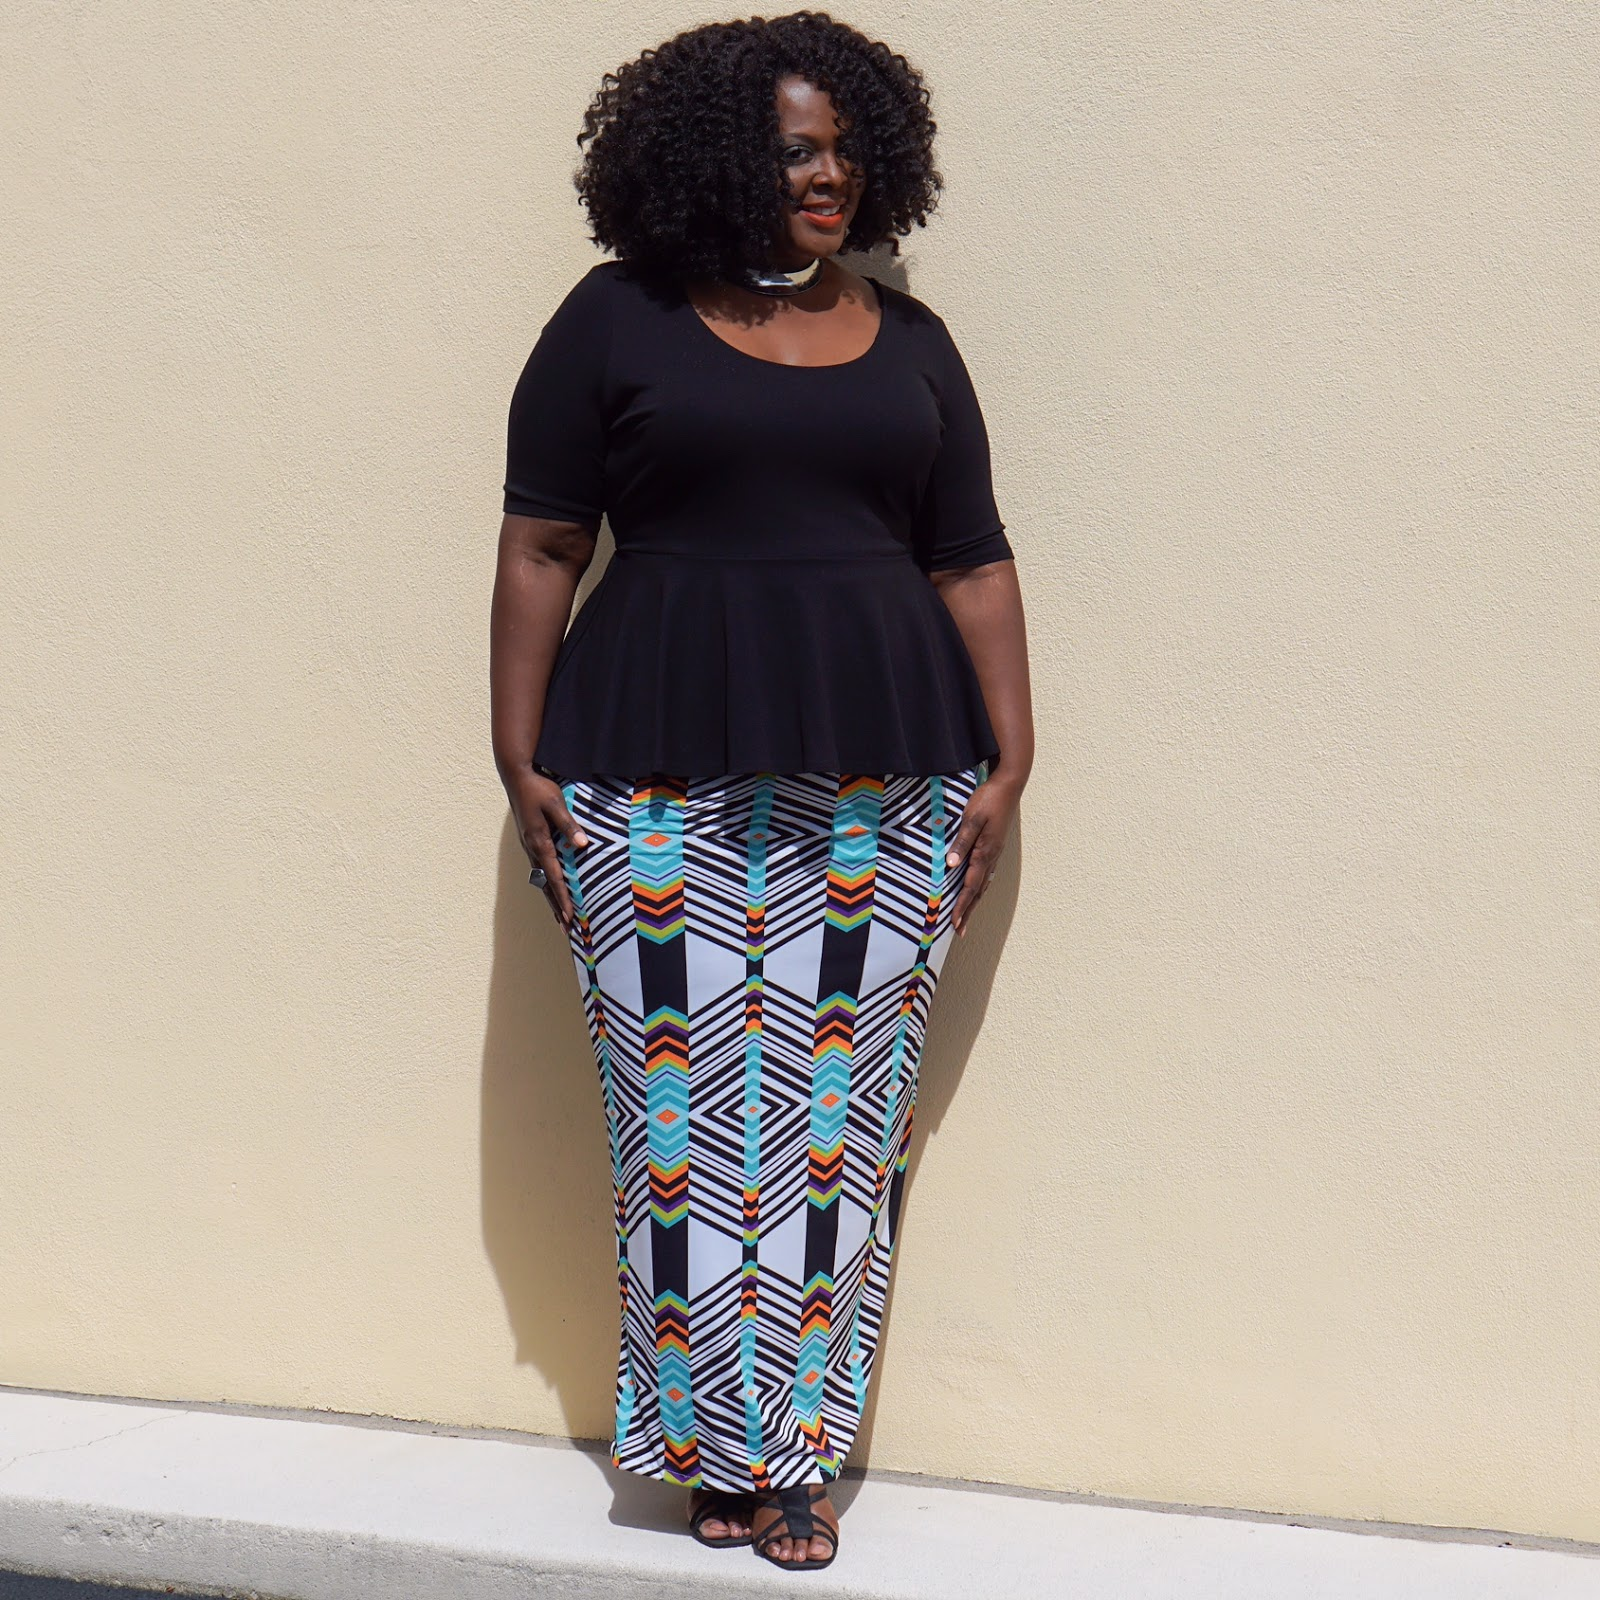 plus size skirts, plus size maxiskirt, plus size skirts